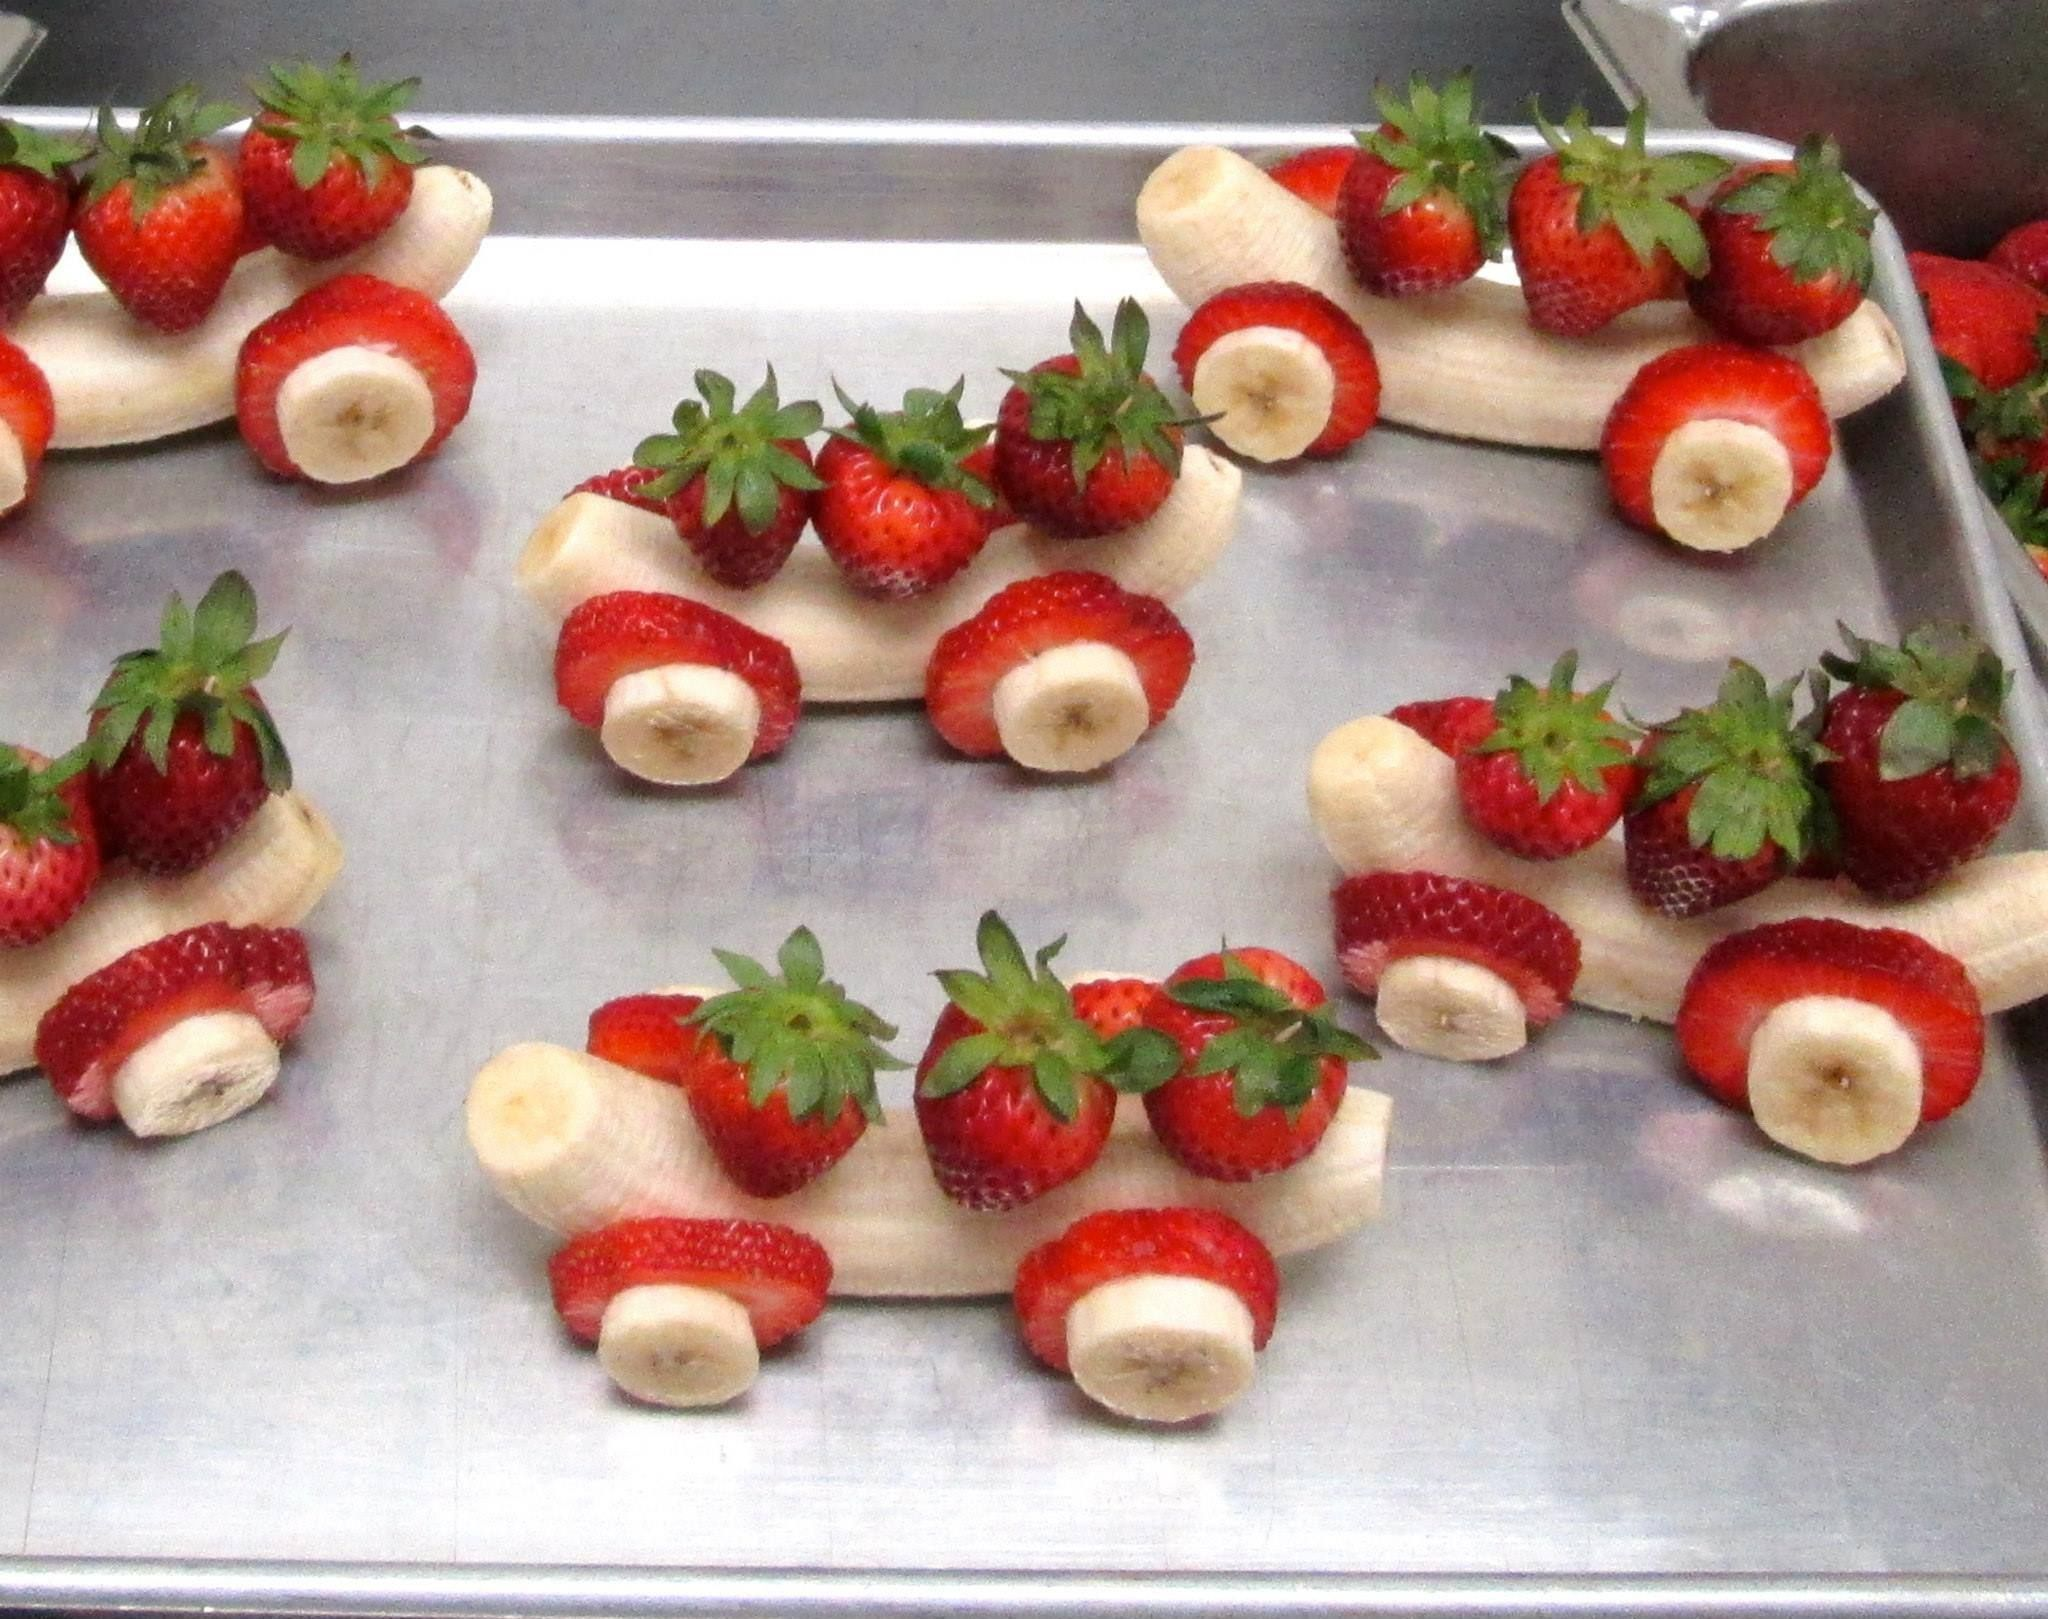 Cars made out of bananas and strawberries.